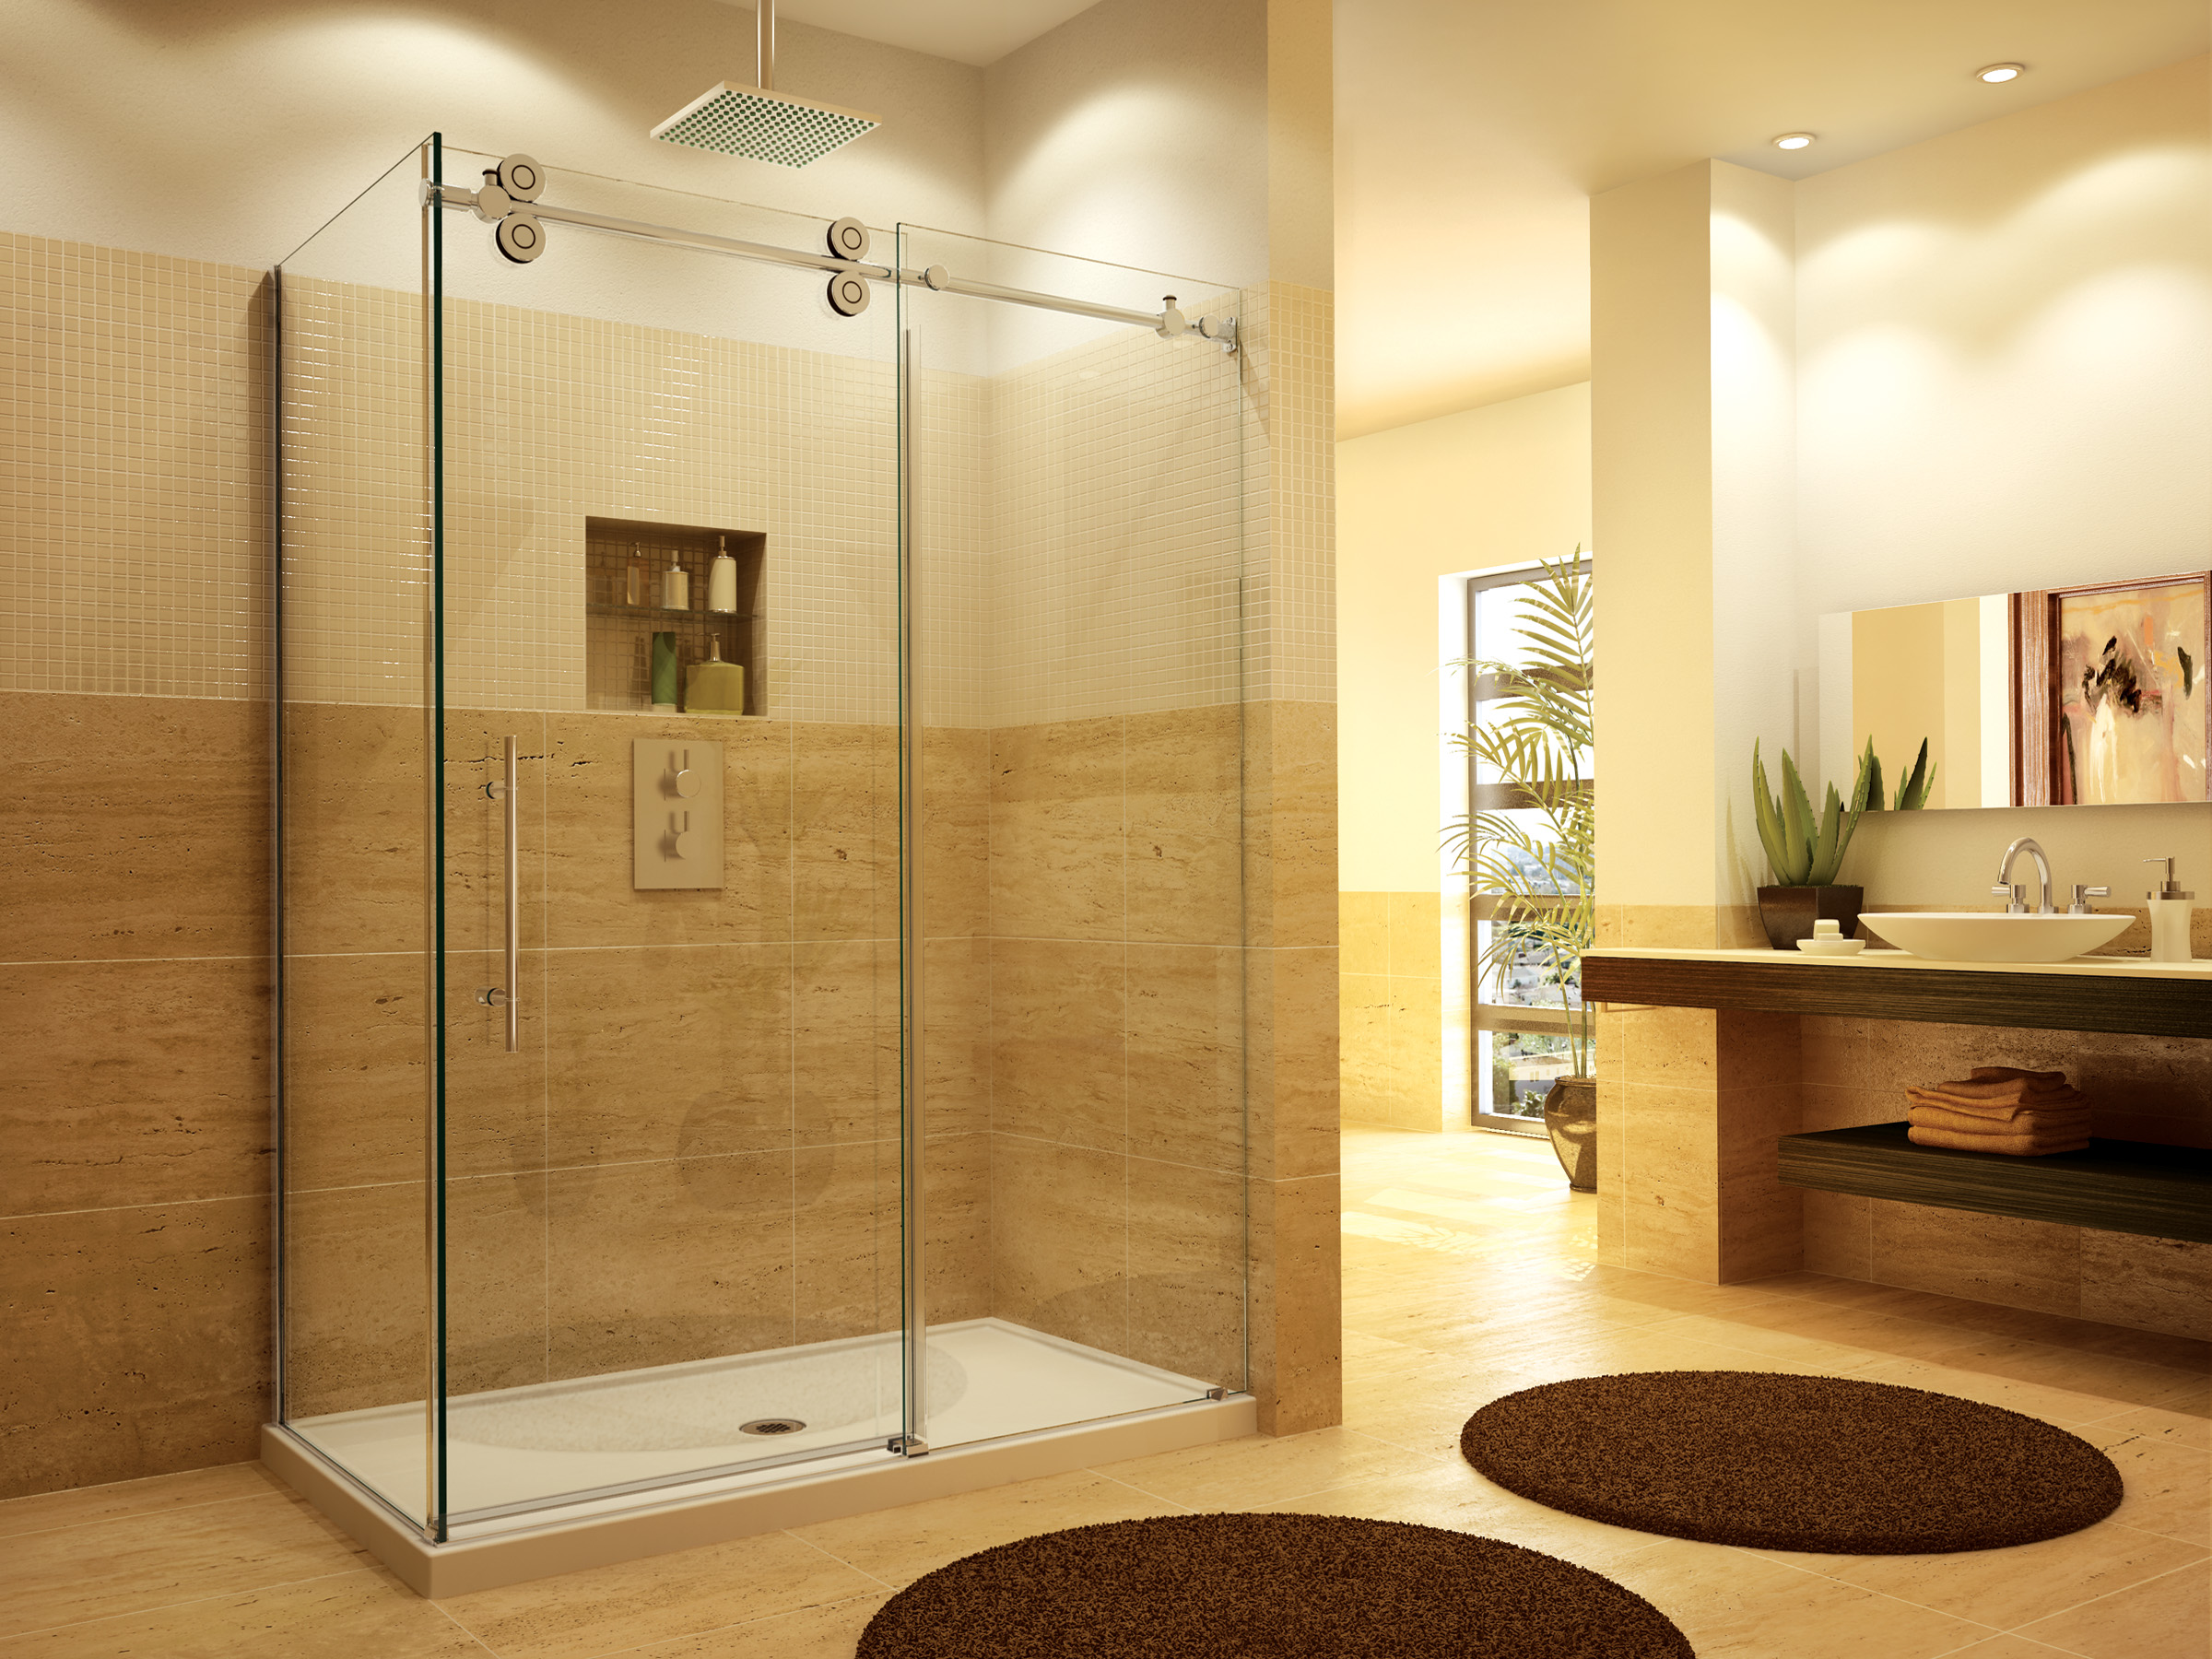 Glass shower door installation in franklin lakes nj glass franklin lakes glass shower door installation bergen county glass service planetlyrics Image collections